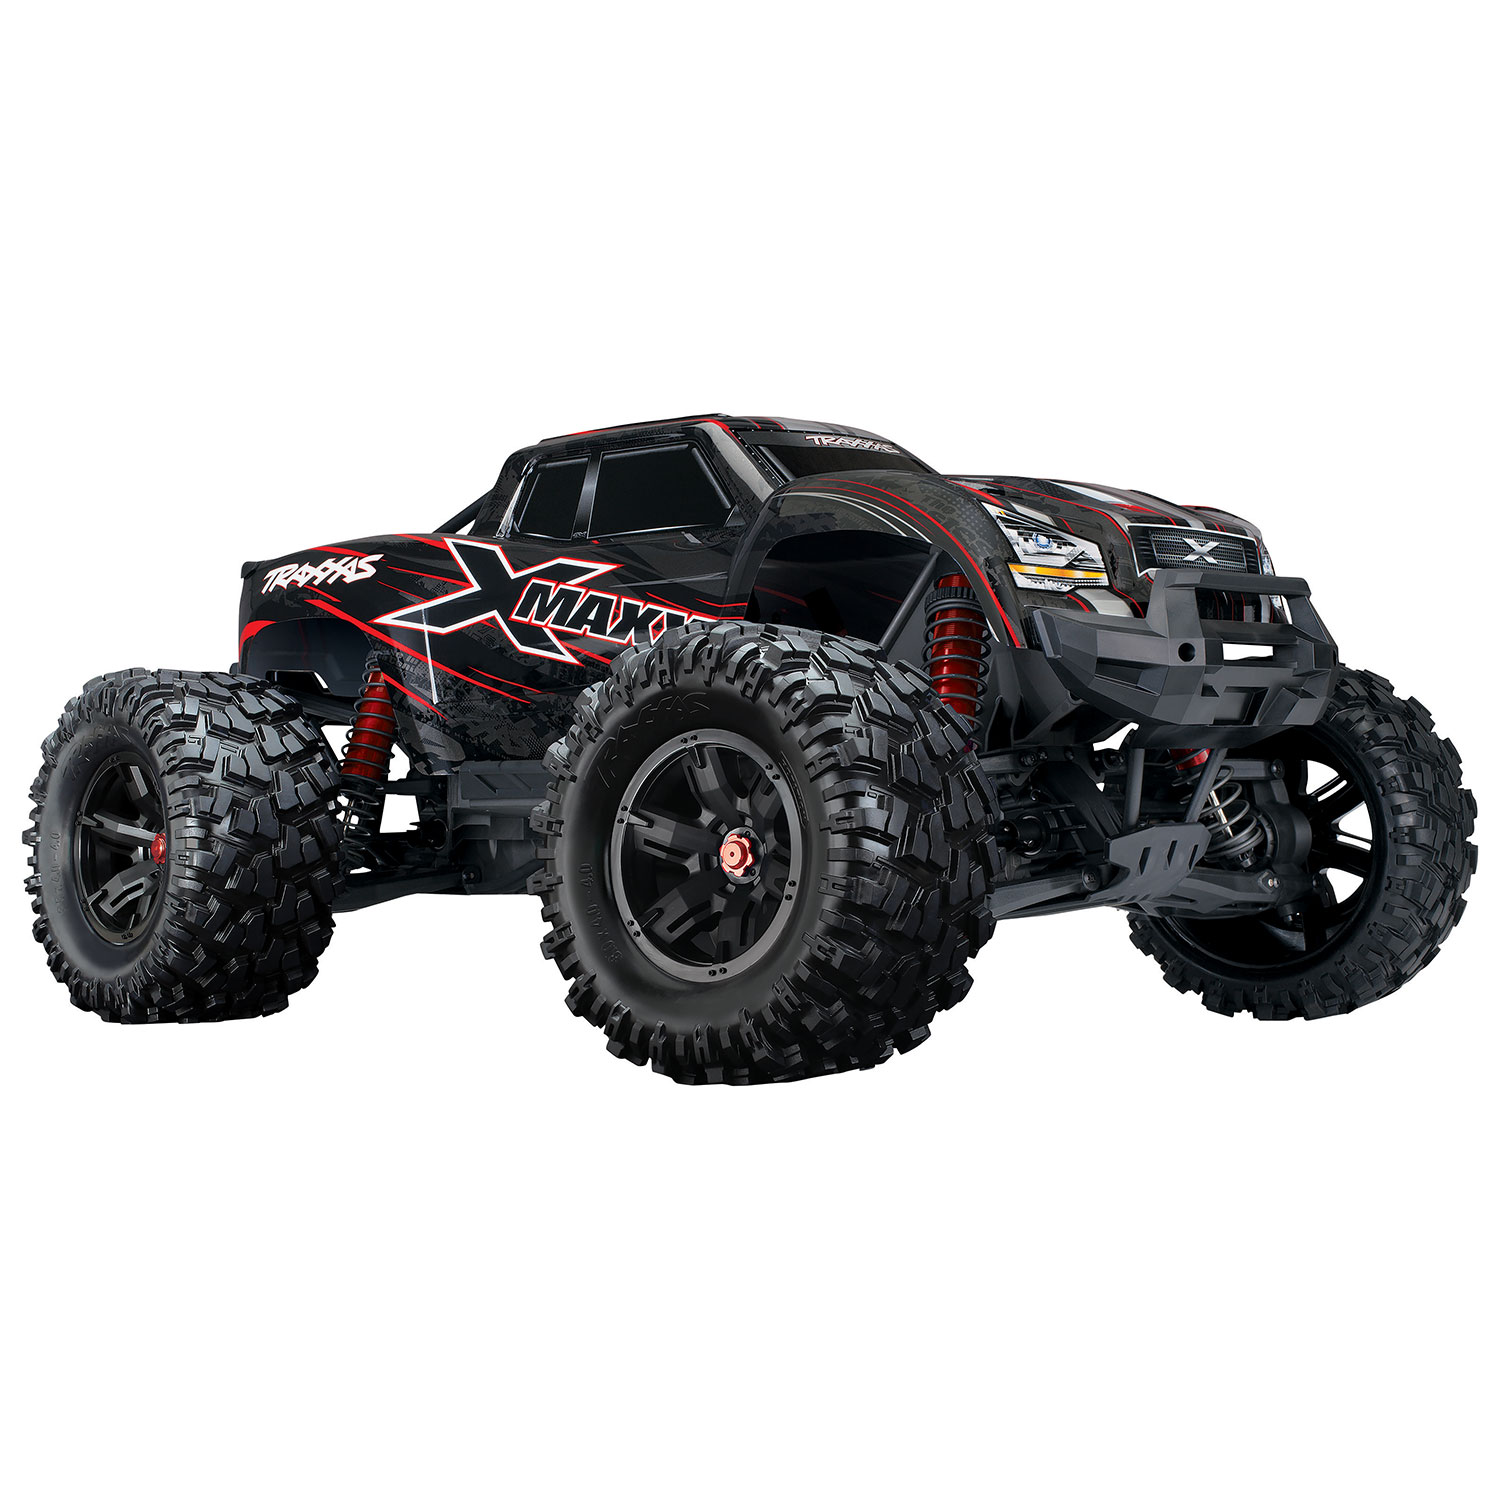 Traxxas X Maxx 8S 4WD 1 5 Scale RC Truck 4 Red RC Cars & Trucks Best Buy Canada